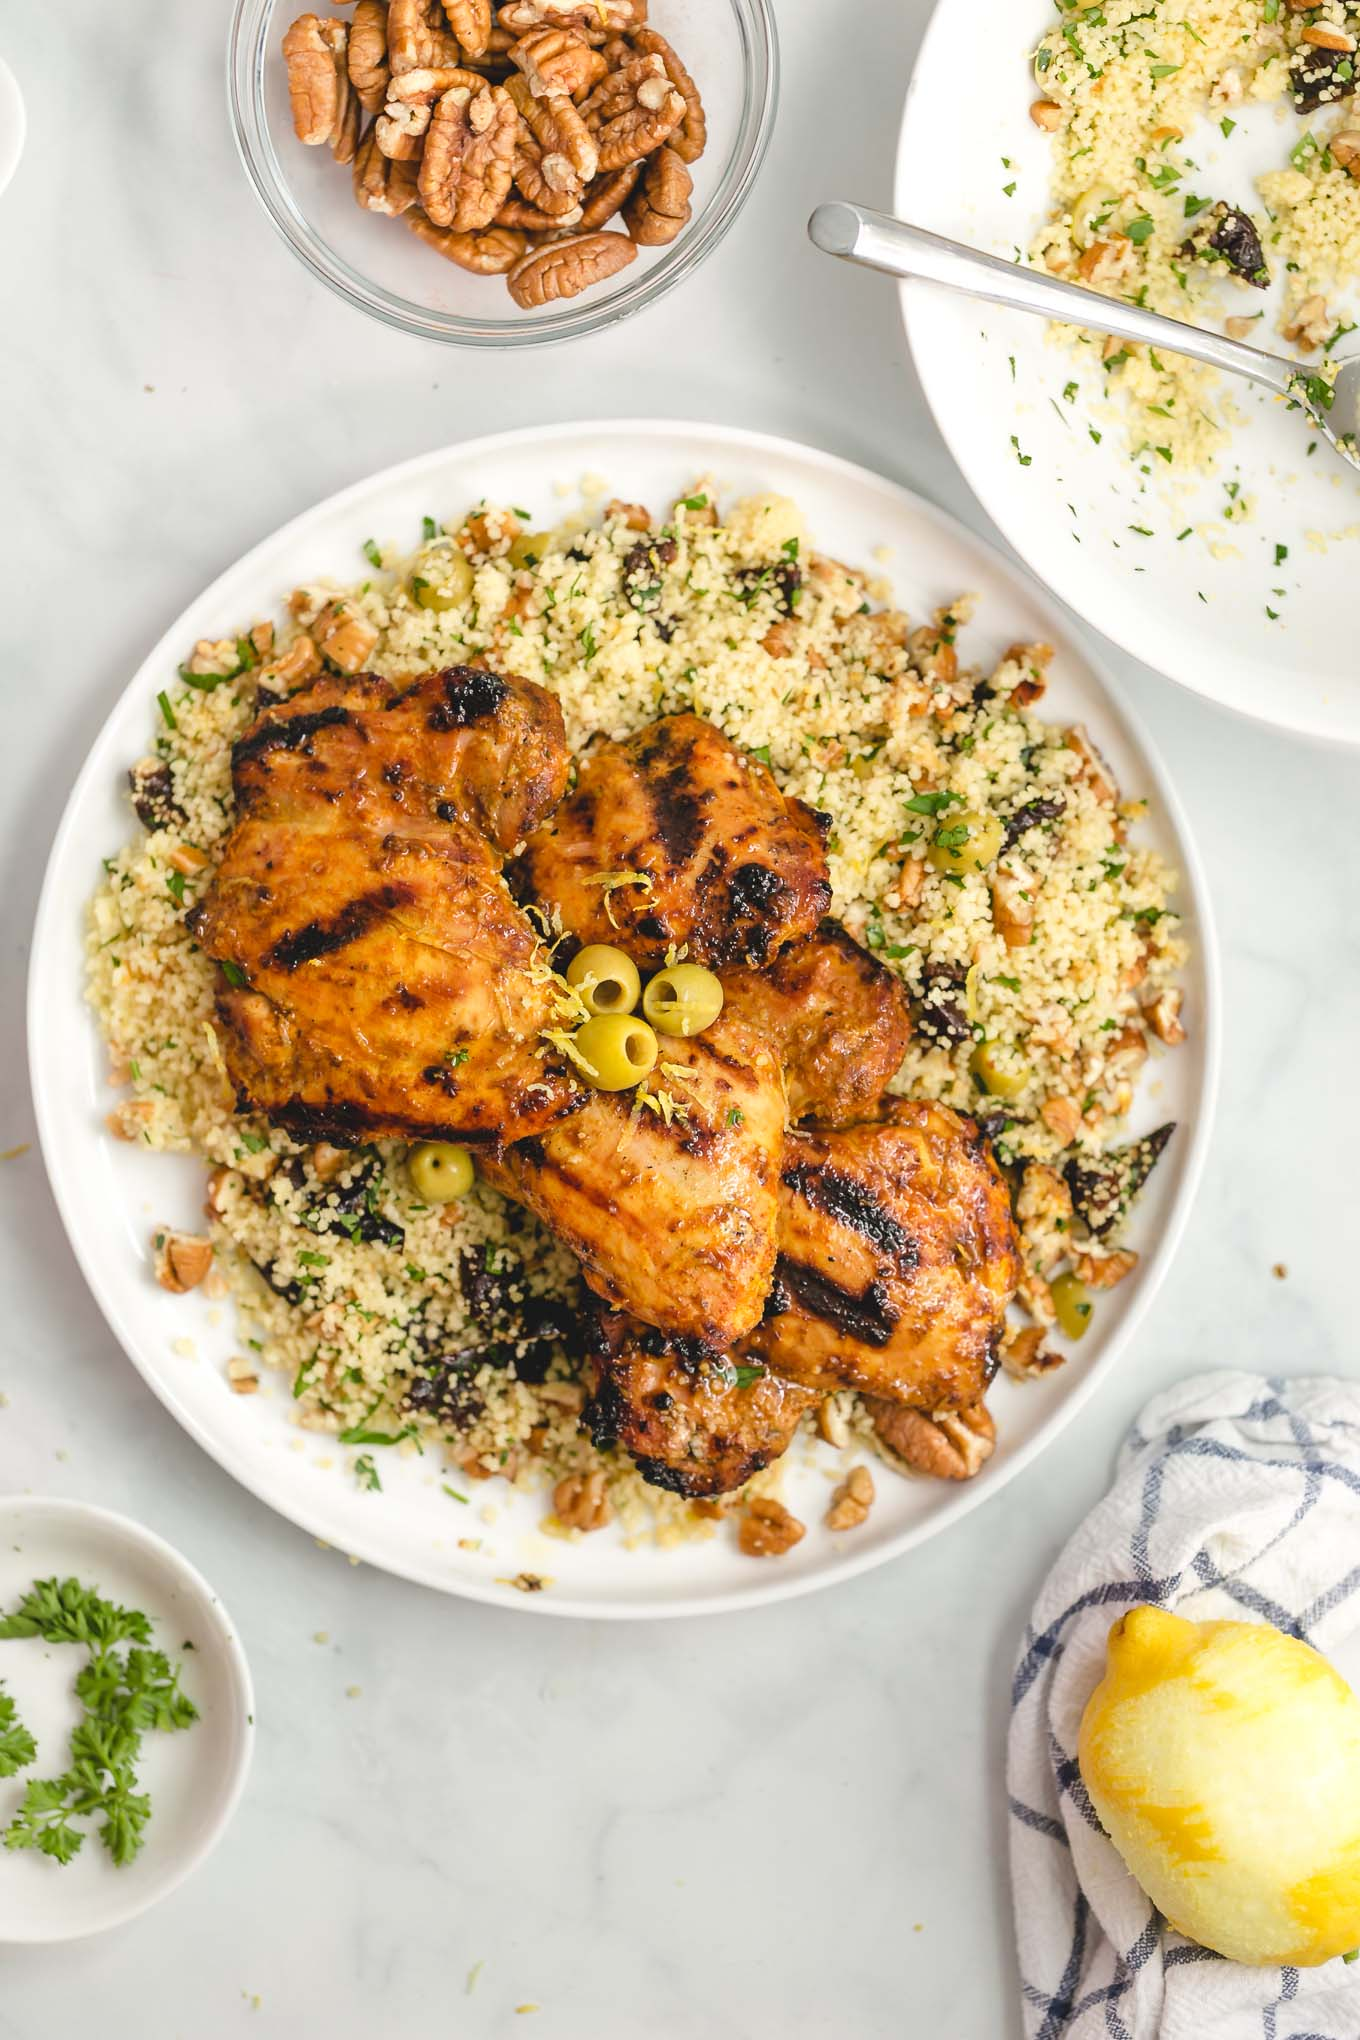 grilled chicken thighs recipe with moroccan marinade and couscous side dish